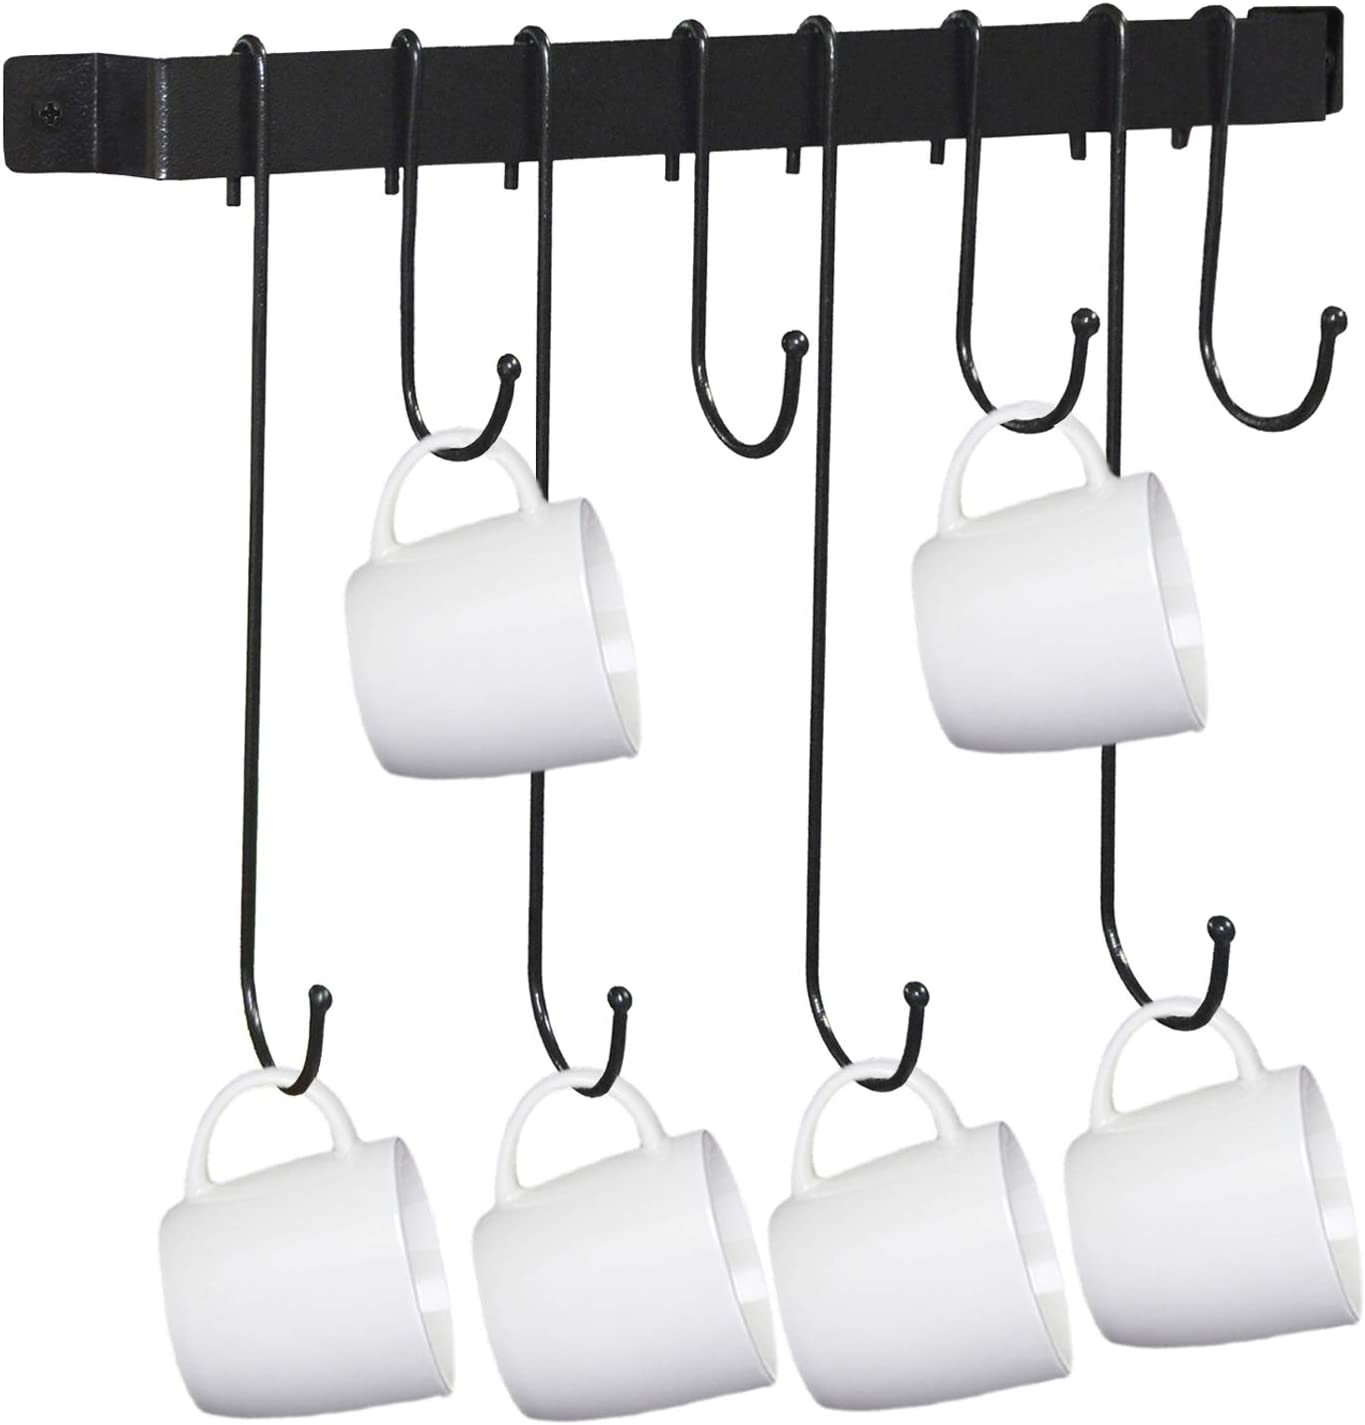 Coffee Mug Rack Wall Mounted Farmhouse Rustic Decor Mug Holder with 8 Kitchen Hooks for Hanging Black (17inch)